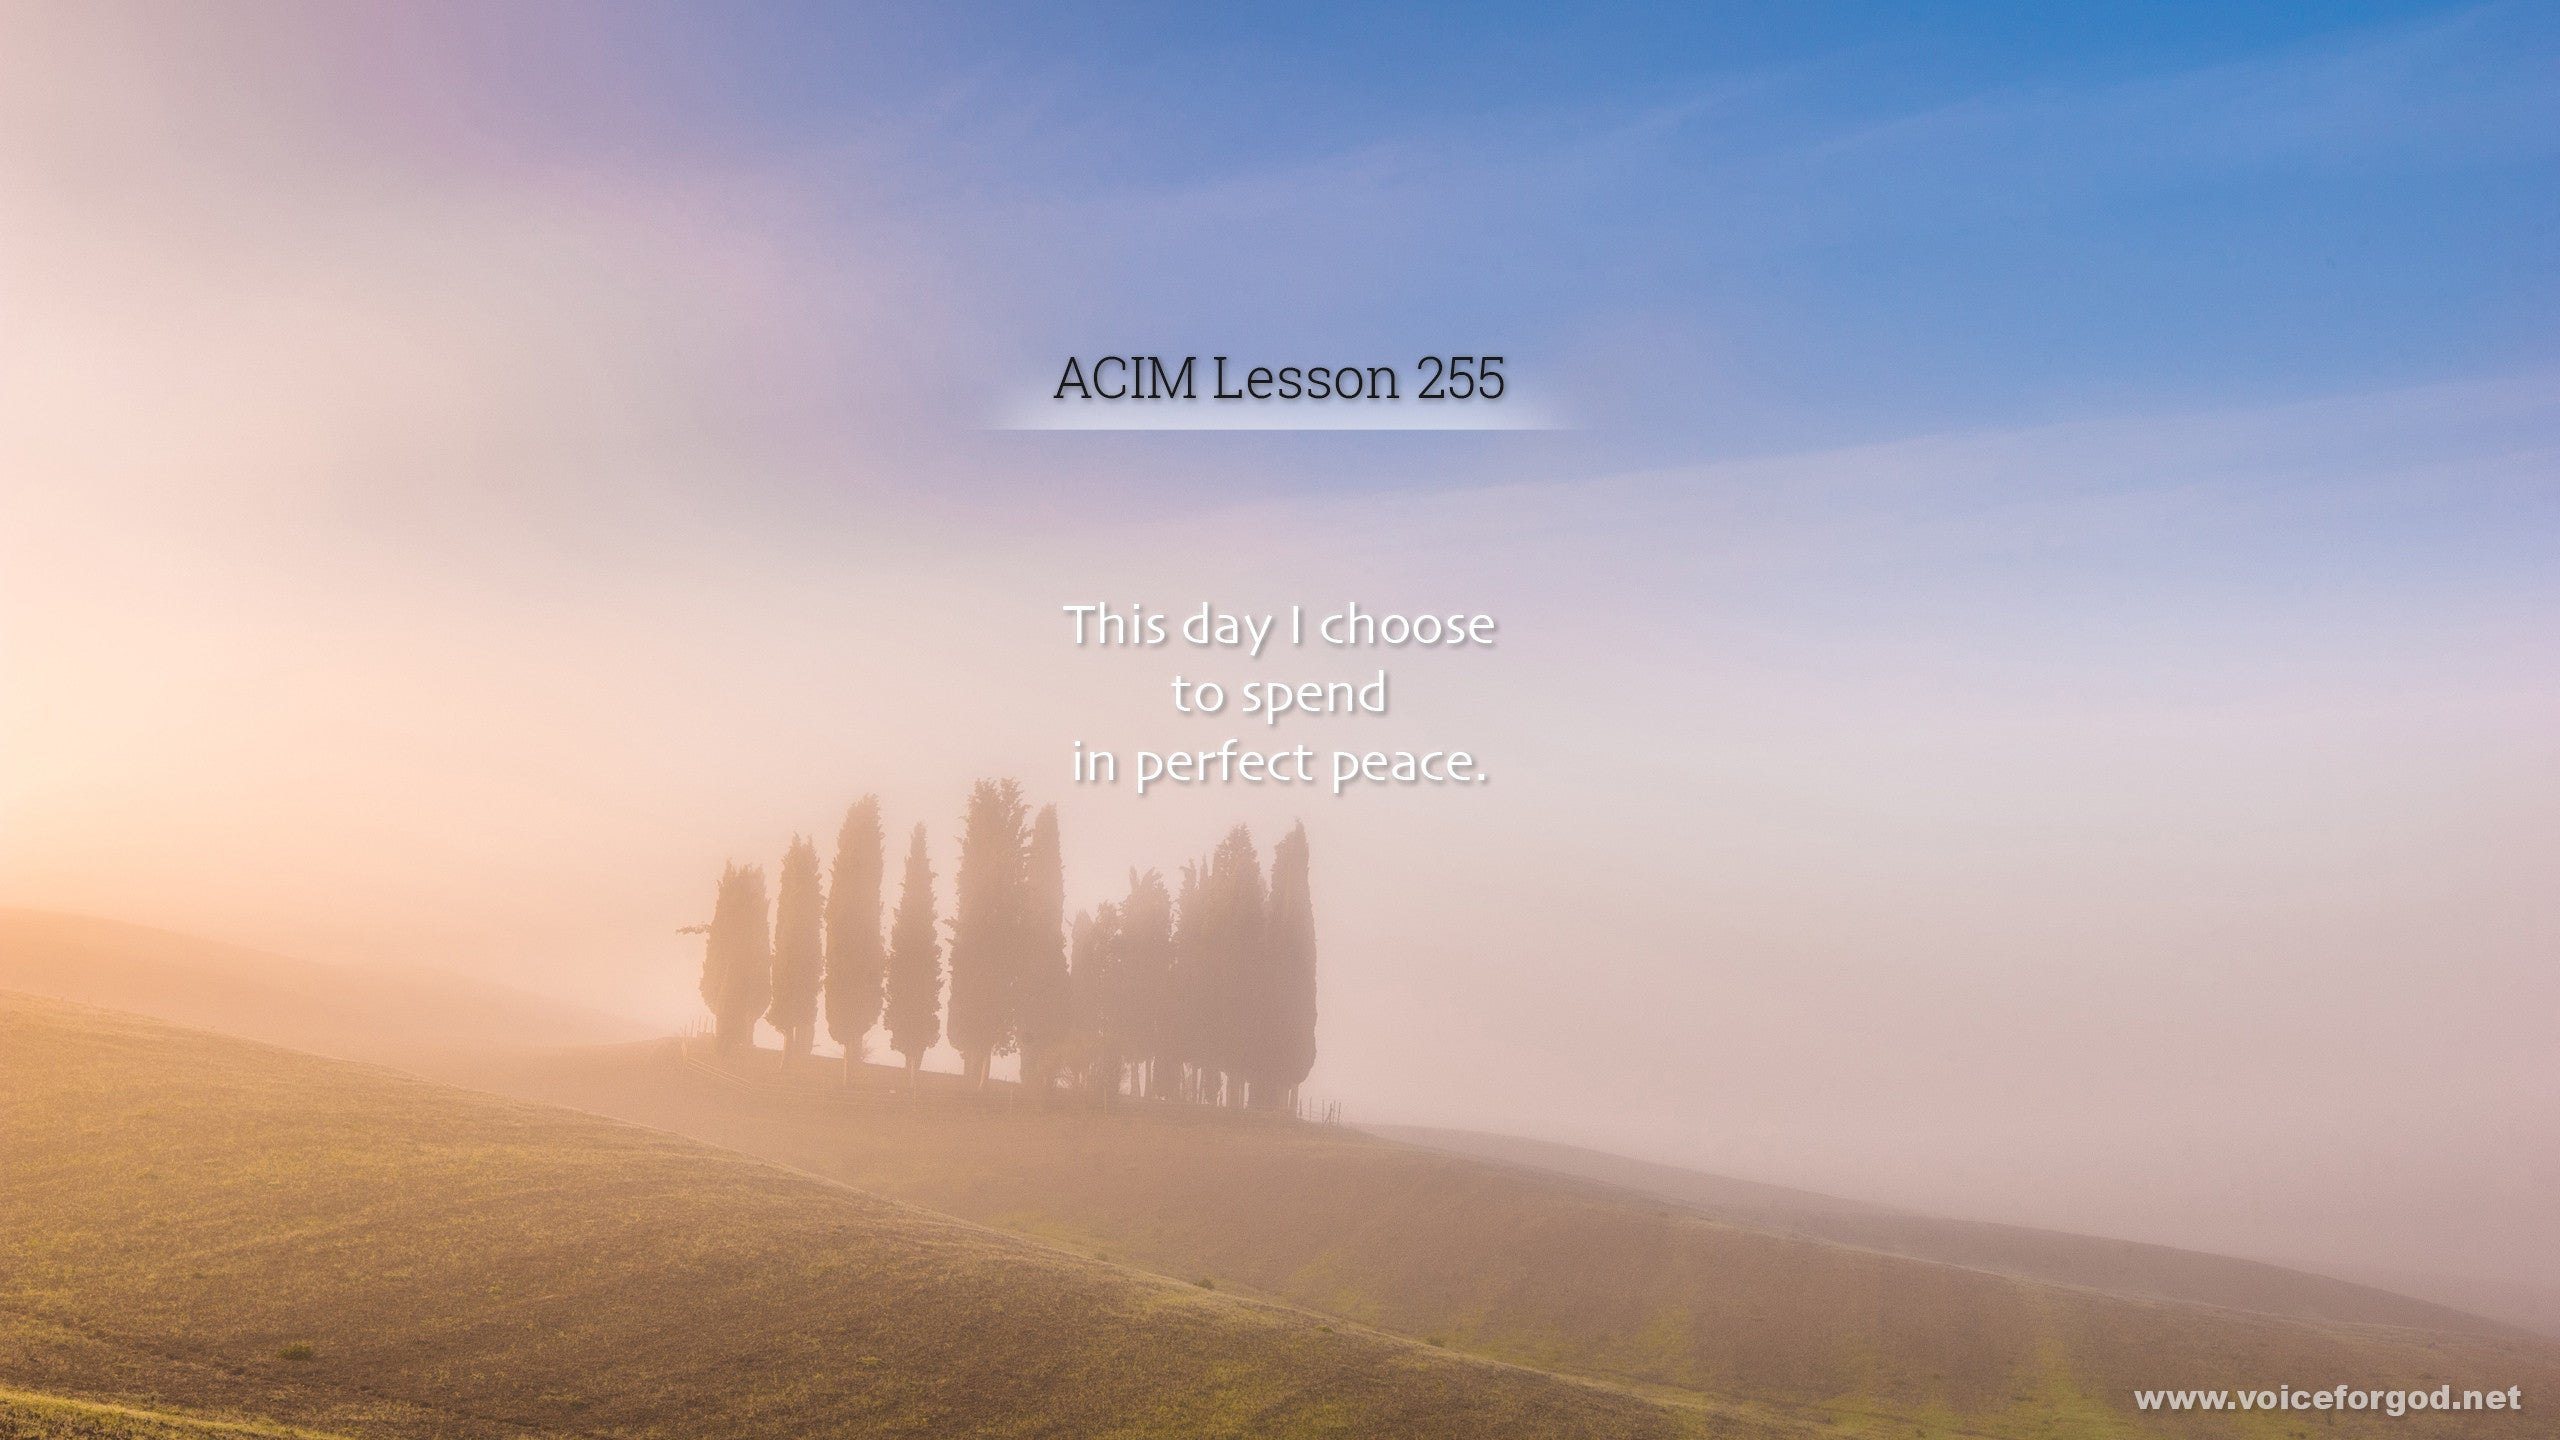 ACIM Lesson 255 - A Course in Miracles Workbook Lesson 255